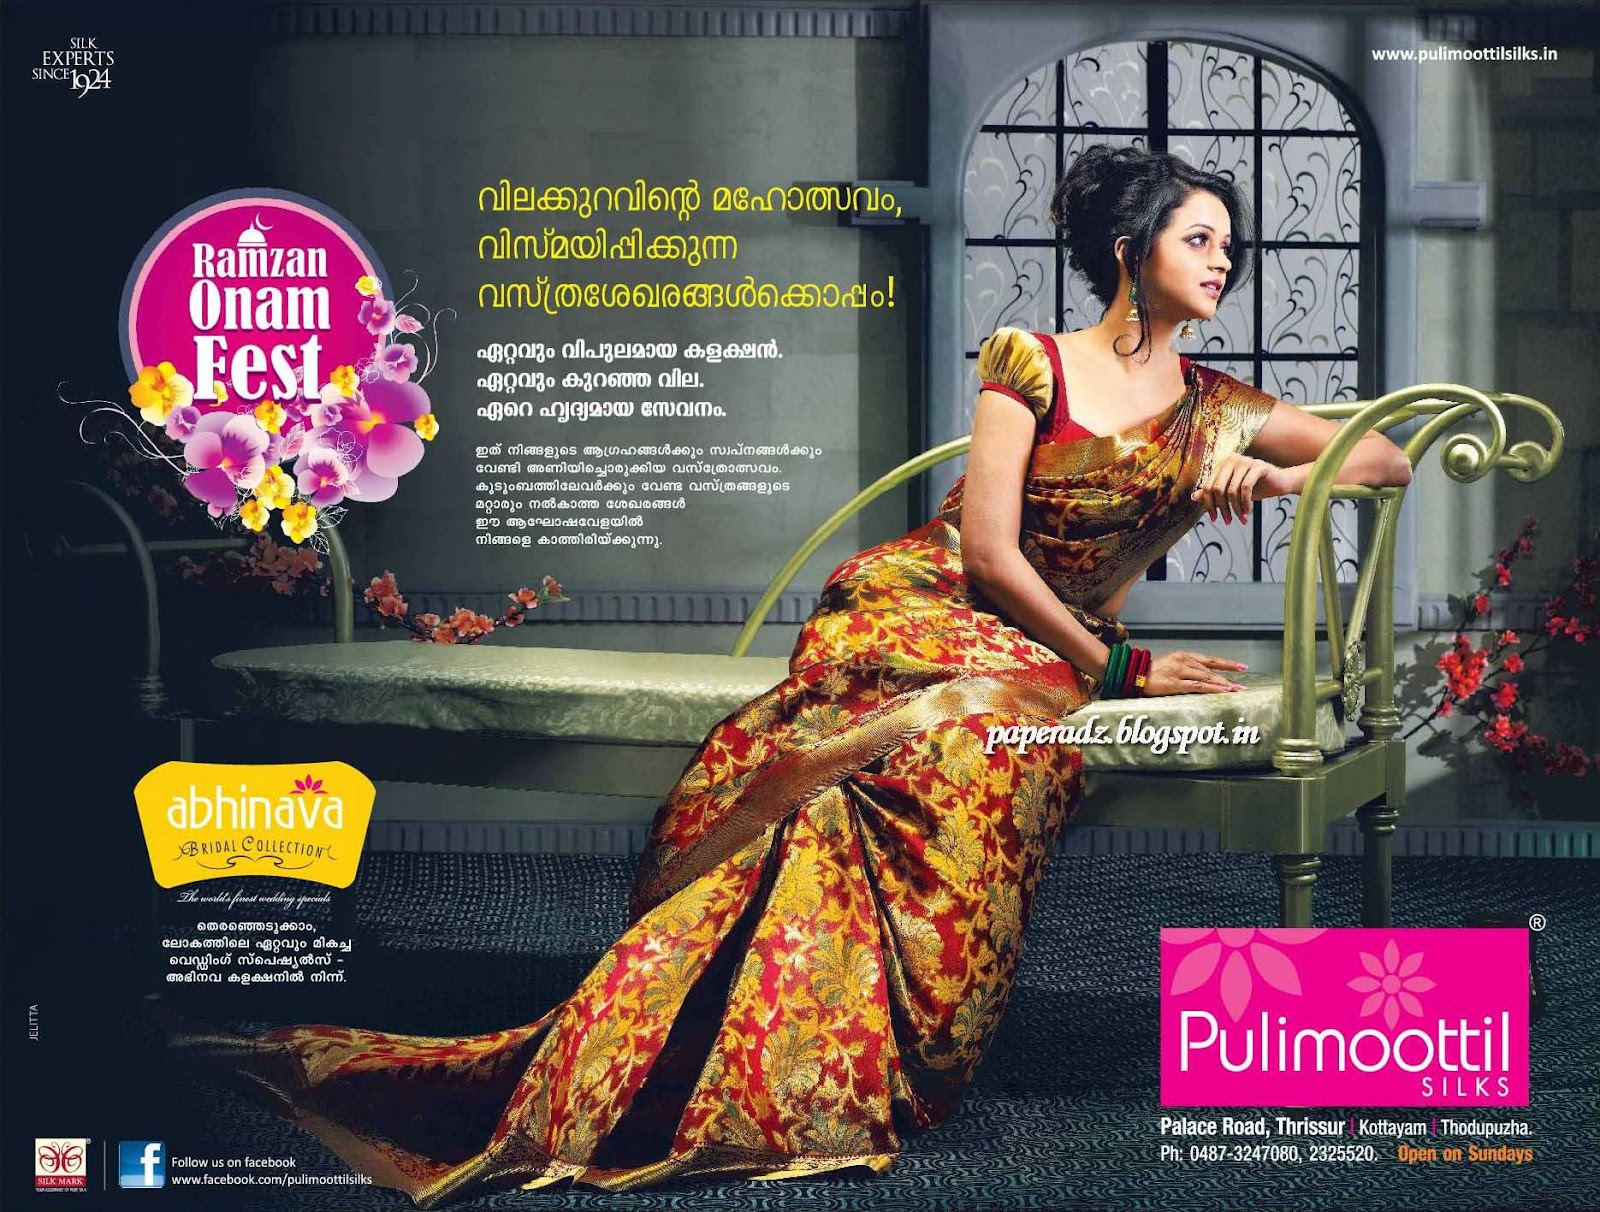 Pulimoottil silks thodupuzha actress bhavana advertisements news pulimoottil silks thodupuzha actress bhavana advertisements altavistaventures Image collections